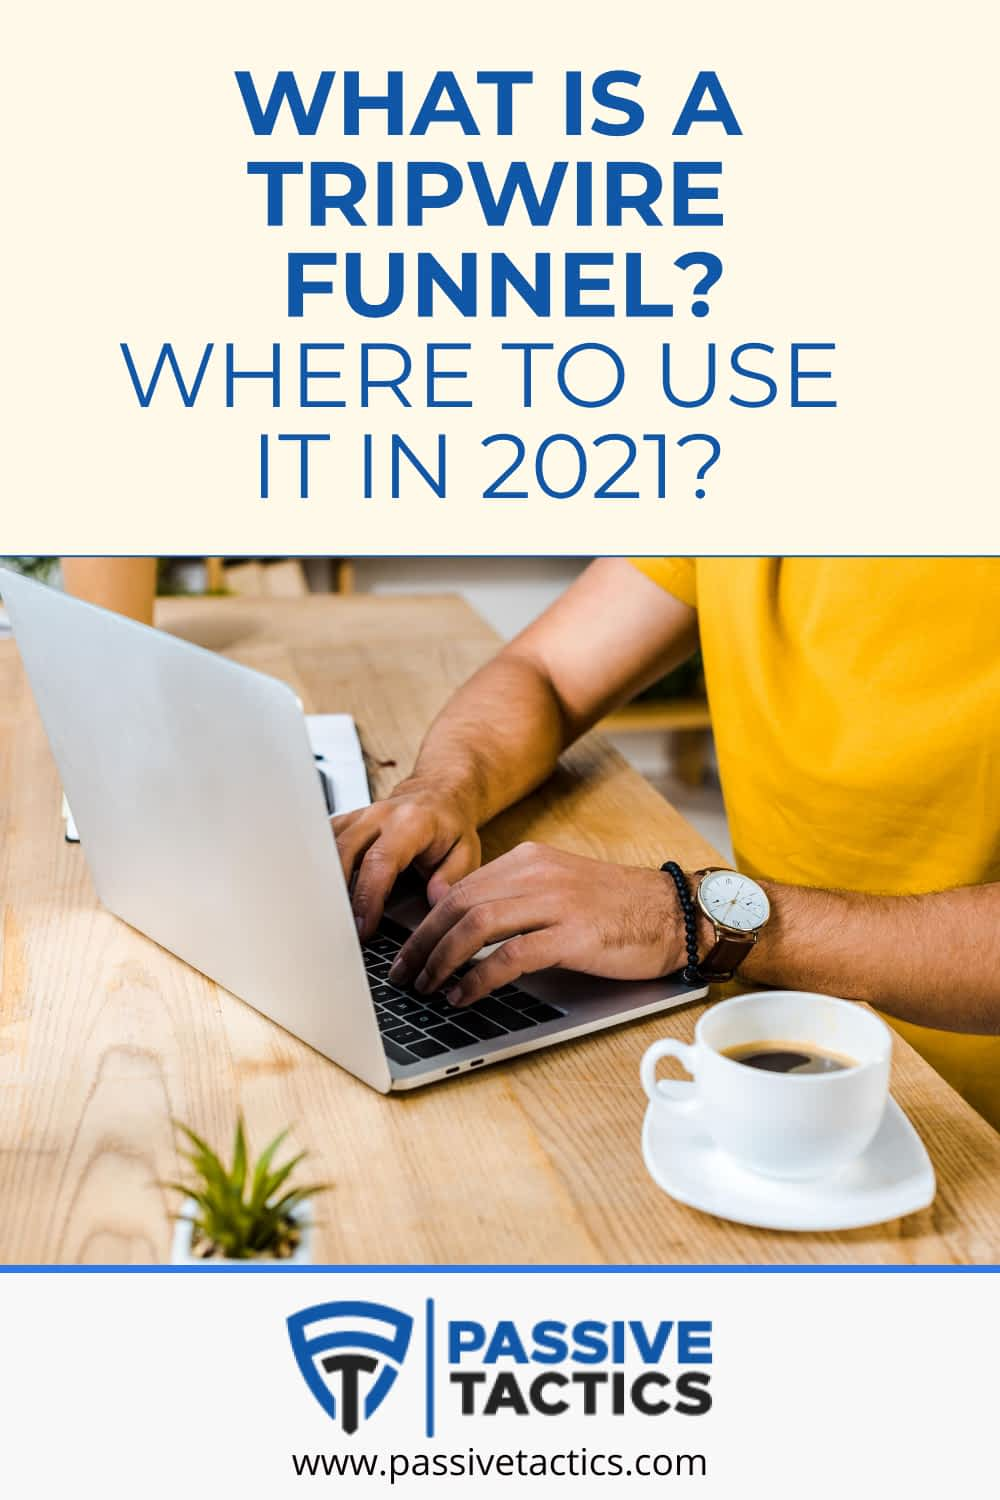 What Is A Tripwire Funnel? Where To Use It In 2021?